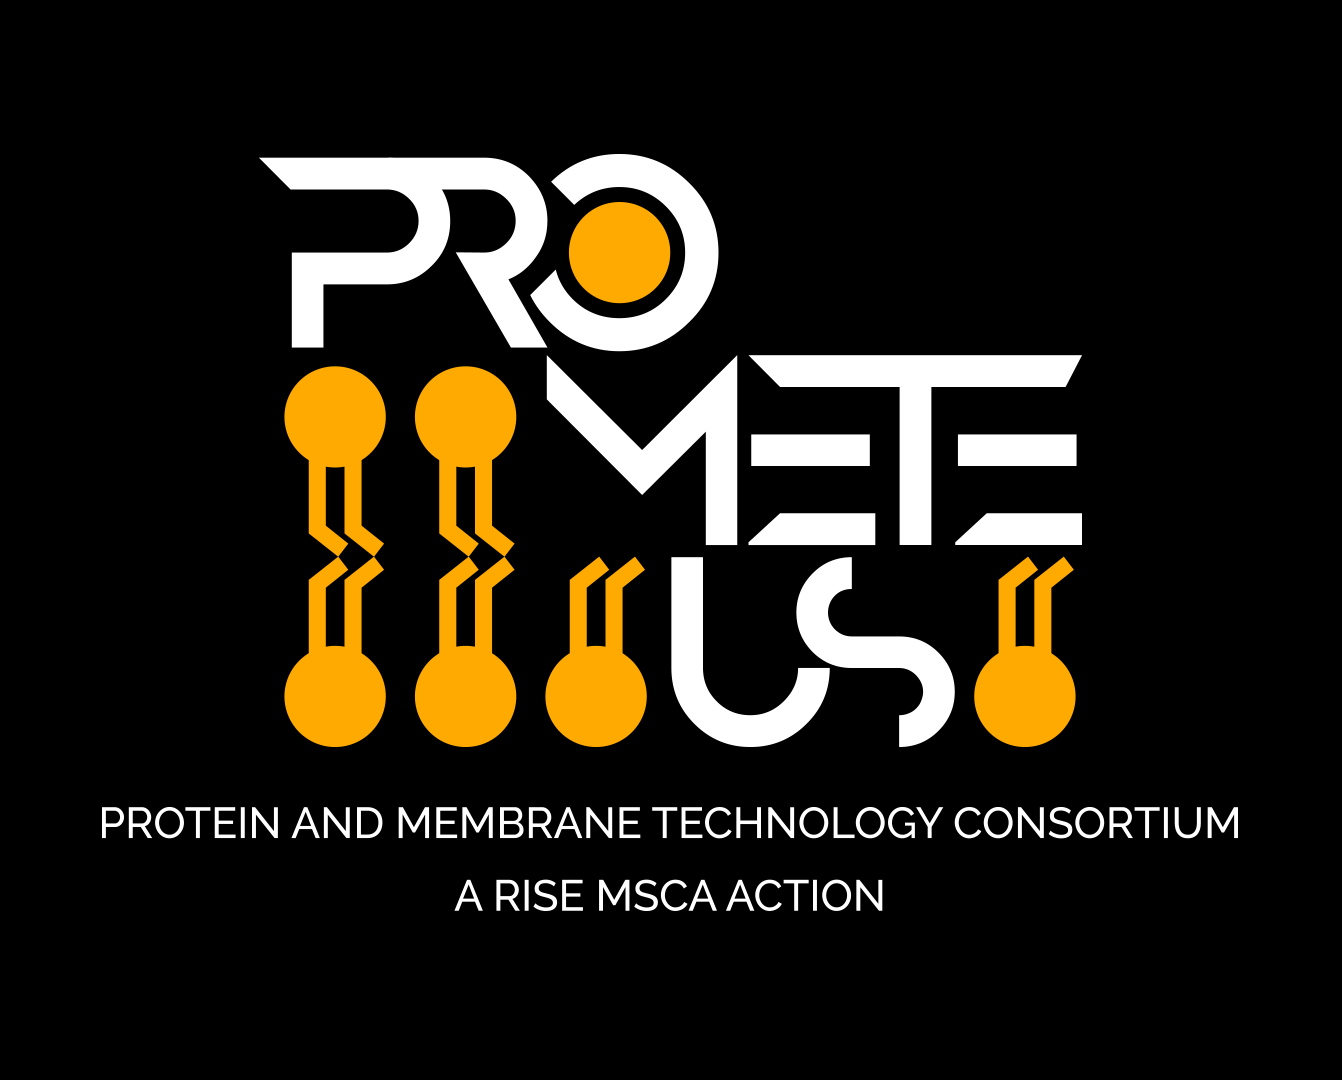 Logo Prometeus: Protein and Membrane Technology Consortium a RISE MSCA Action